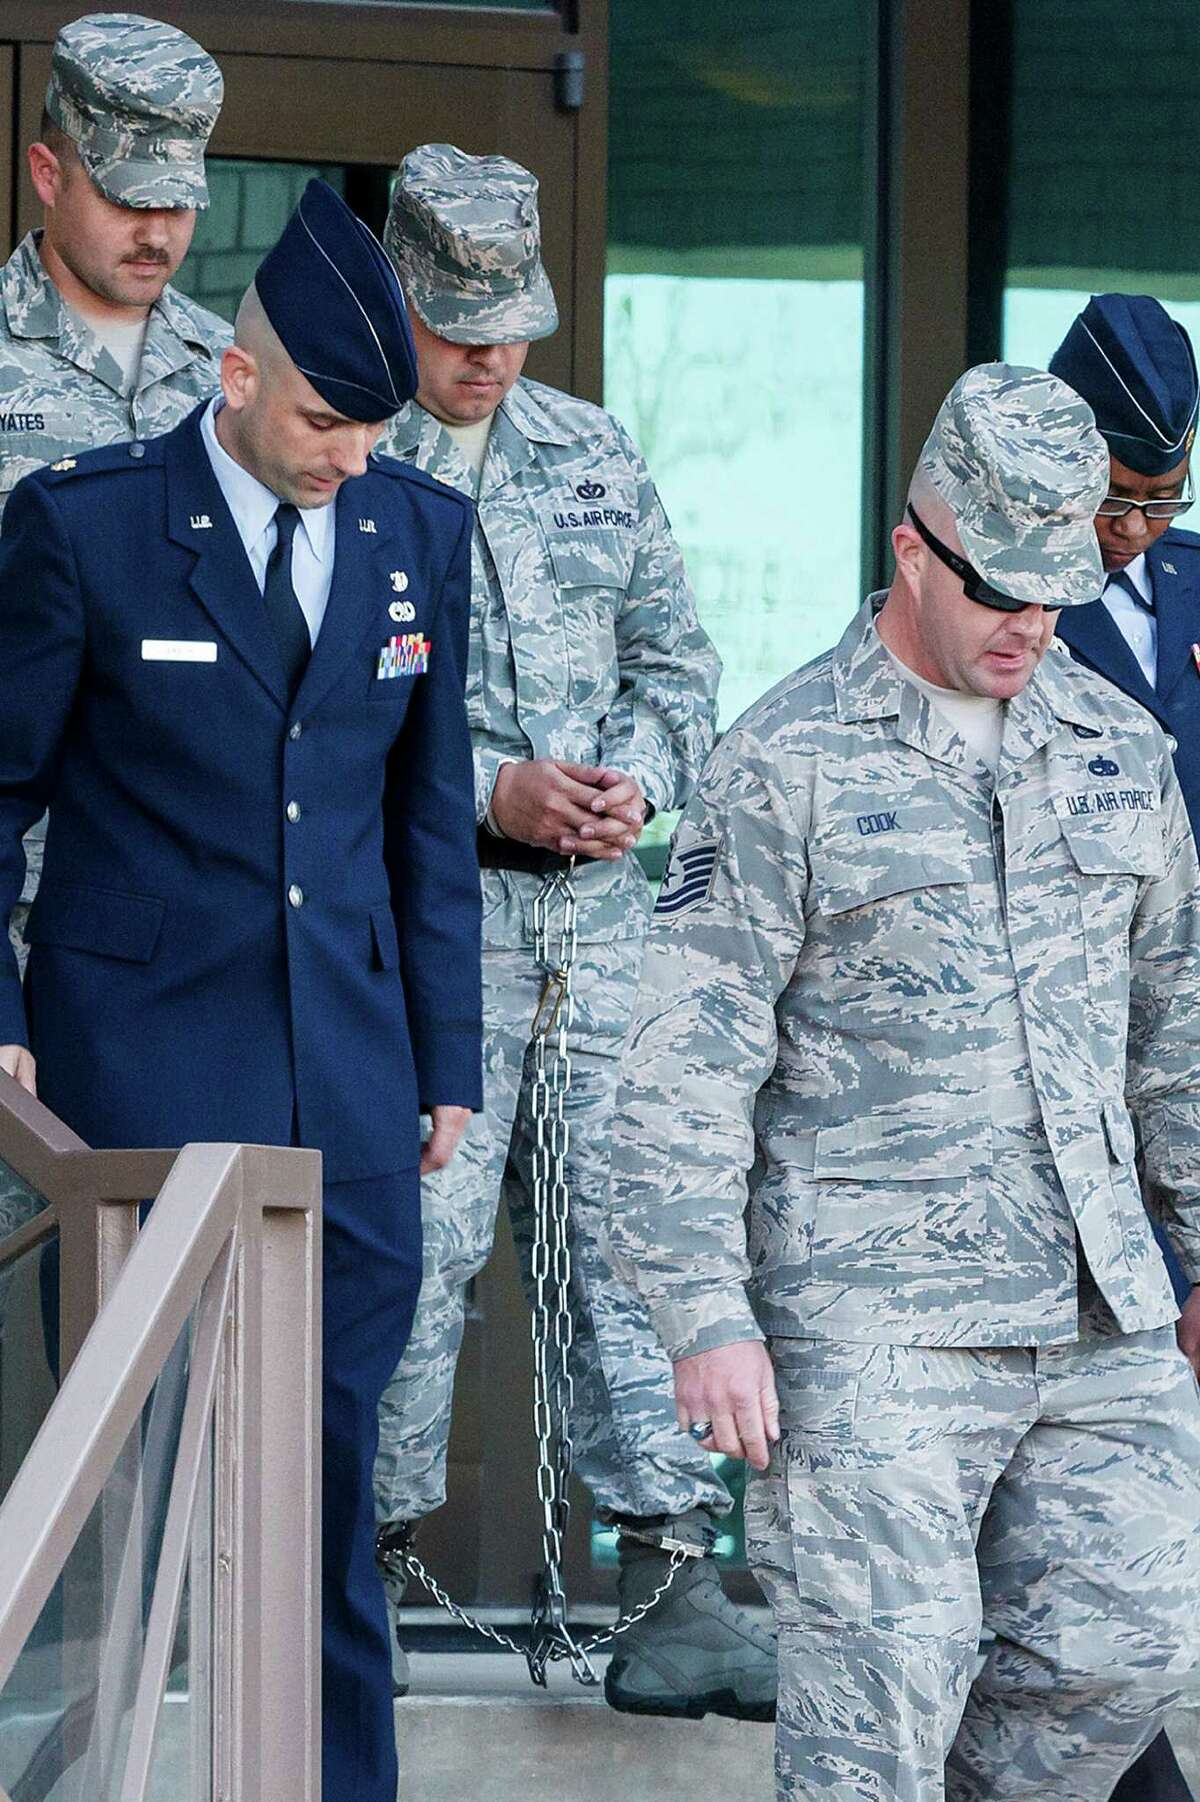 A shackled Staff Sgt. Eddy Soto (center) is escorted out of the 37th Training Wing headquarters building at Lackland after his Article 32 hearing on Saturday, March 16, 2013. Soto is the second basic training instructor to be found guilty of rape. He was also accused of having an